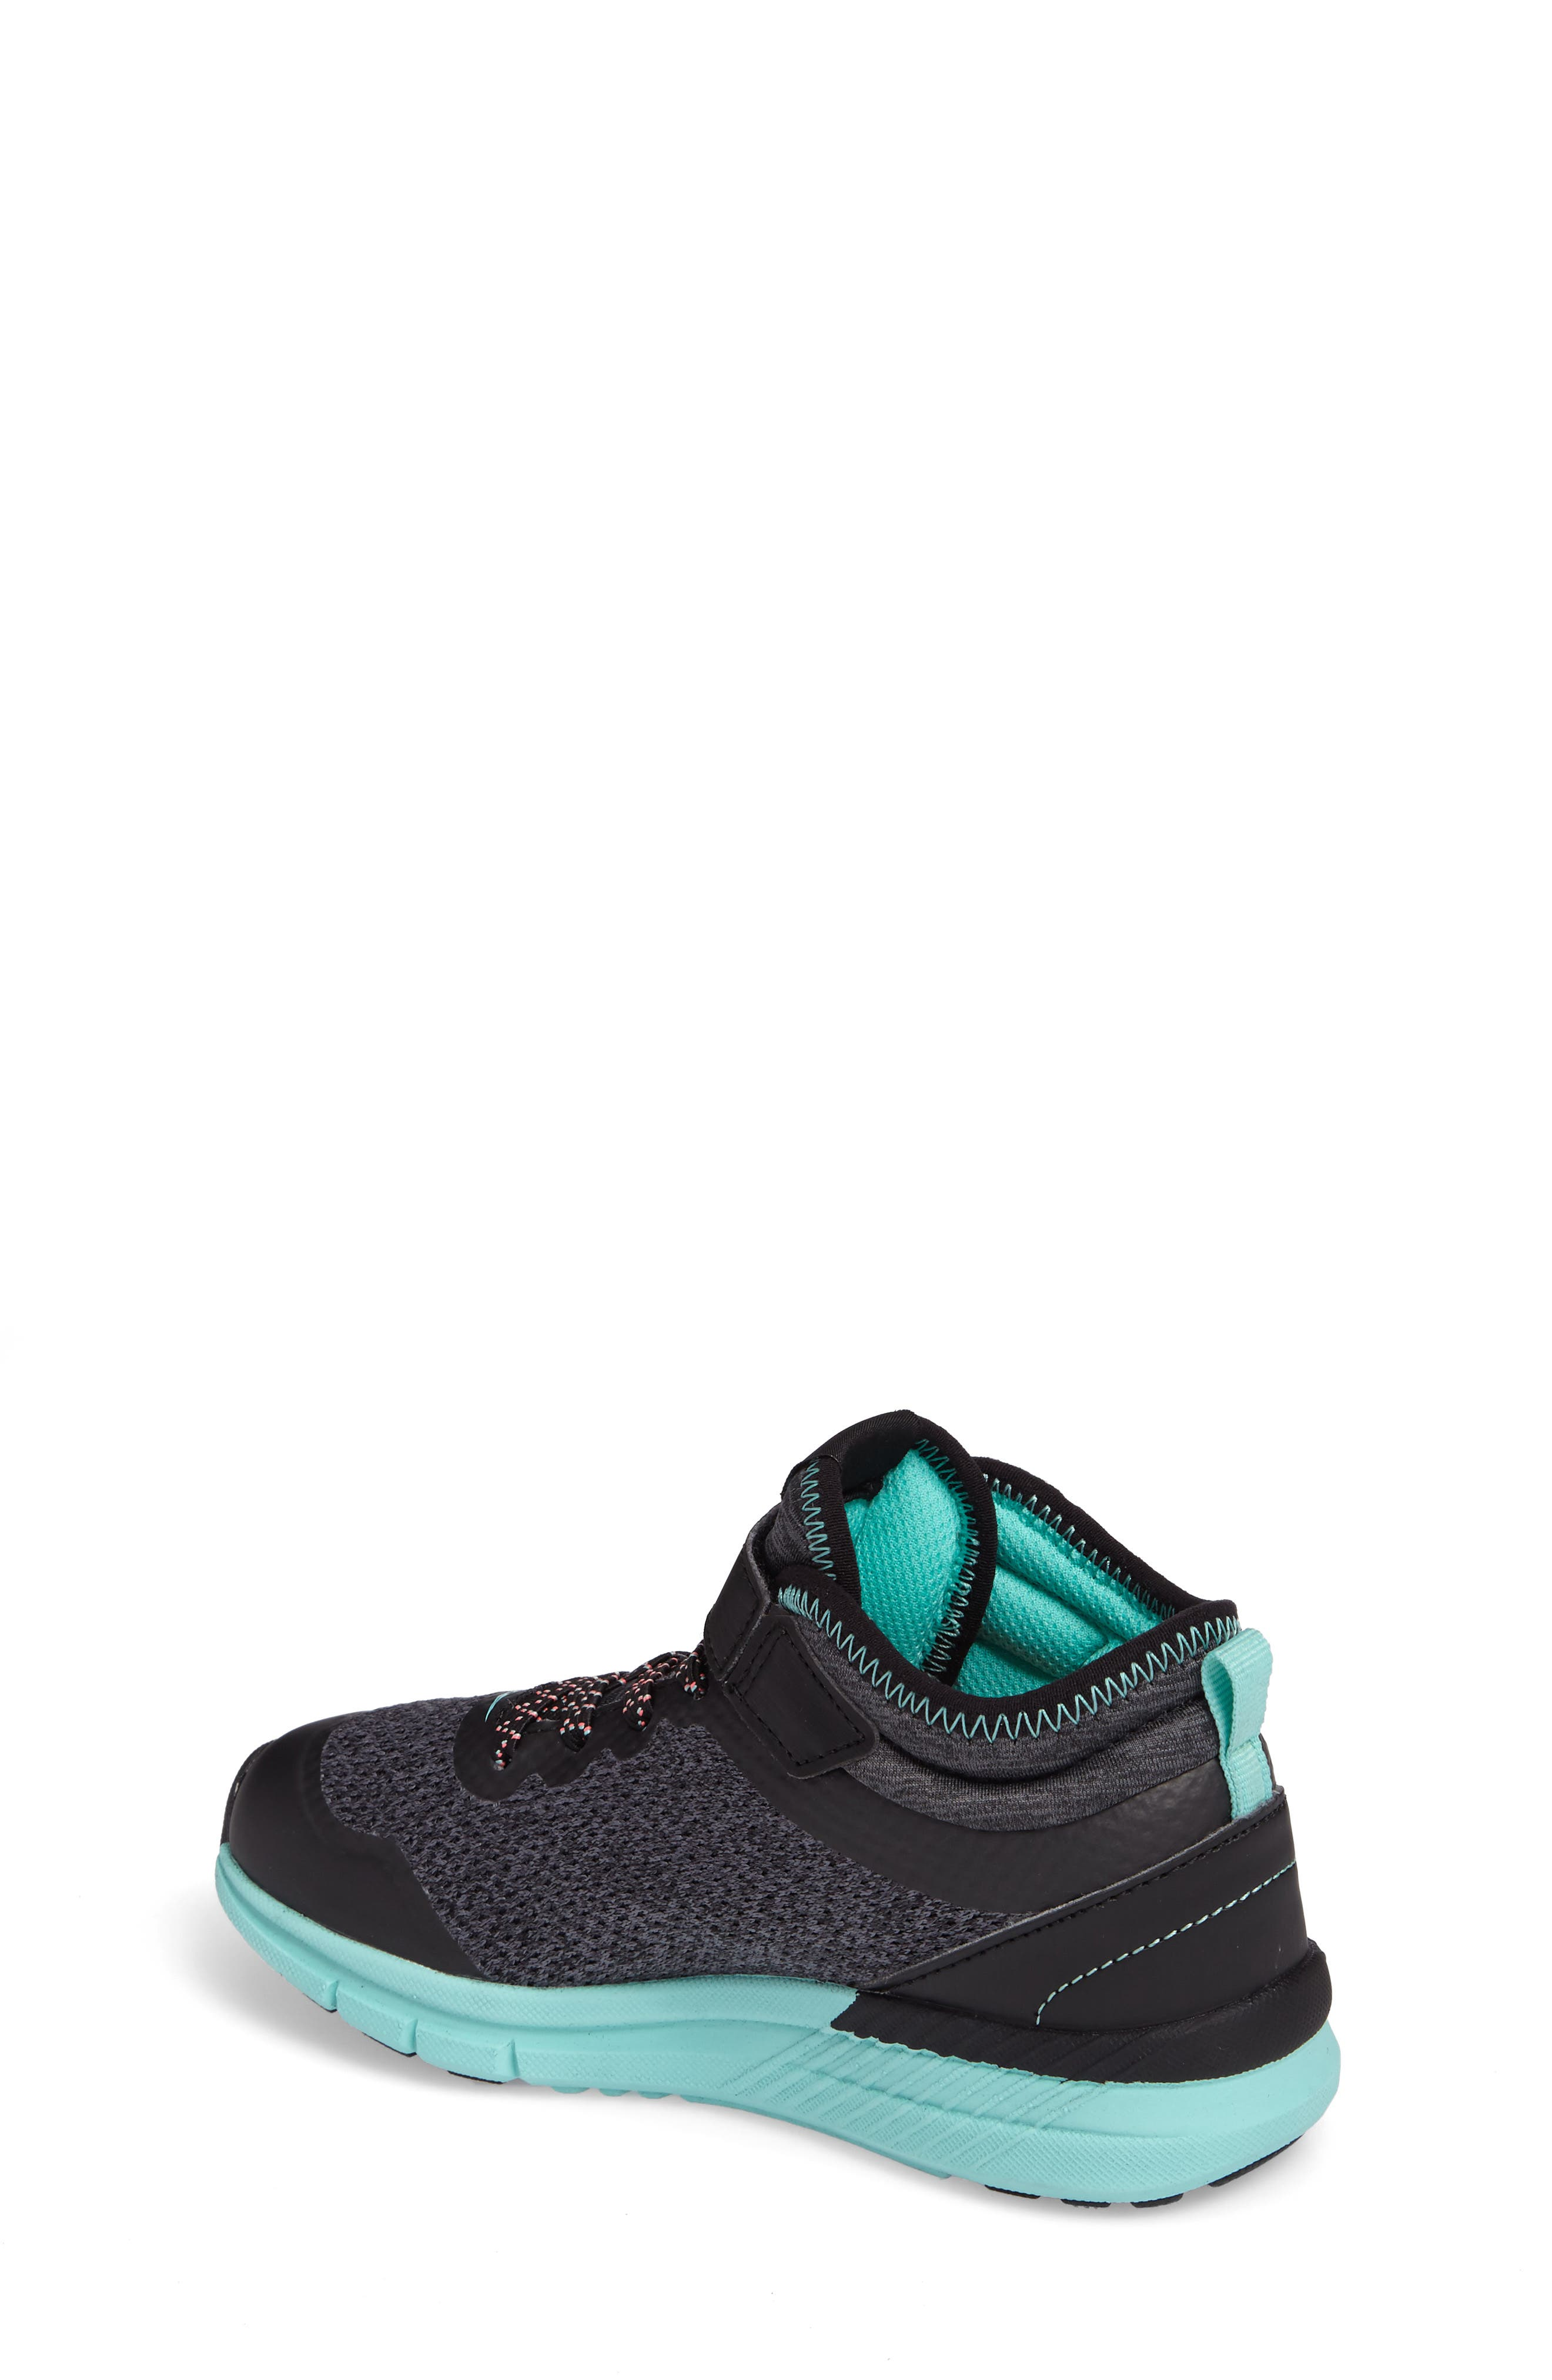 Ideal Sneaker,                             Alternate thumbnail 2, color,                             Black/ Turquoise